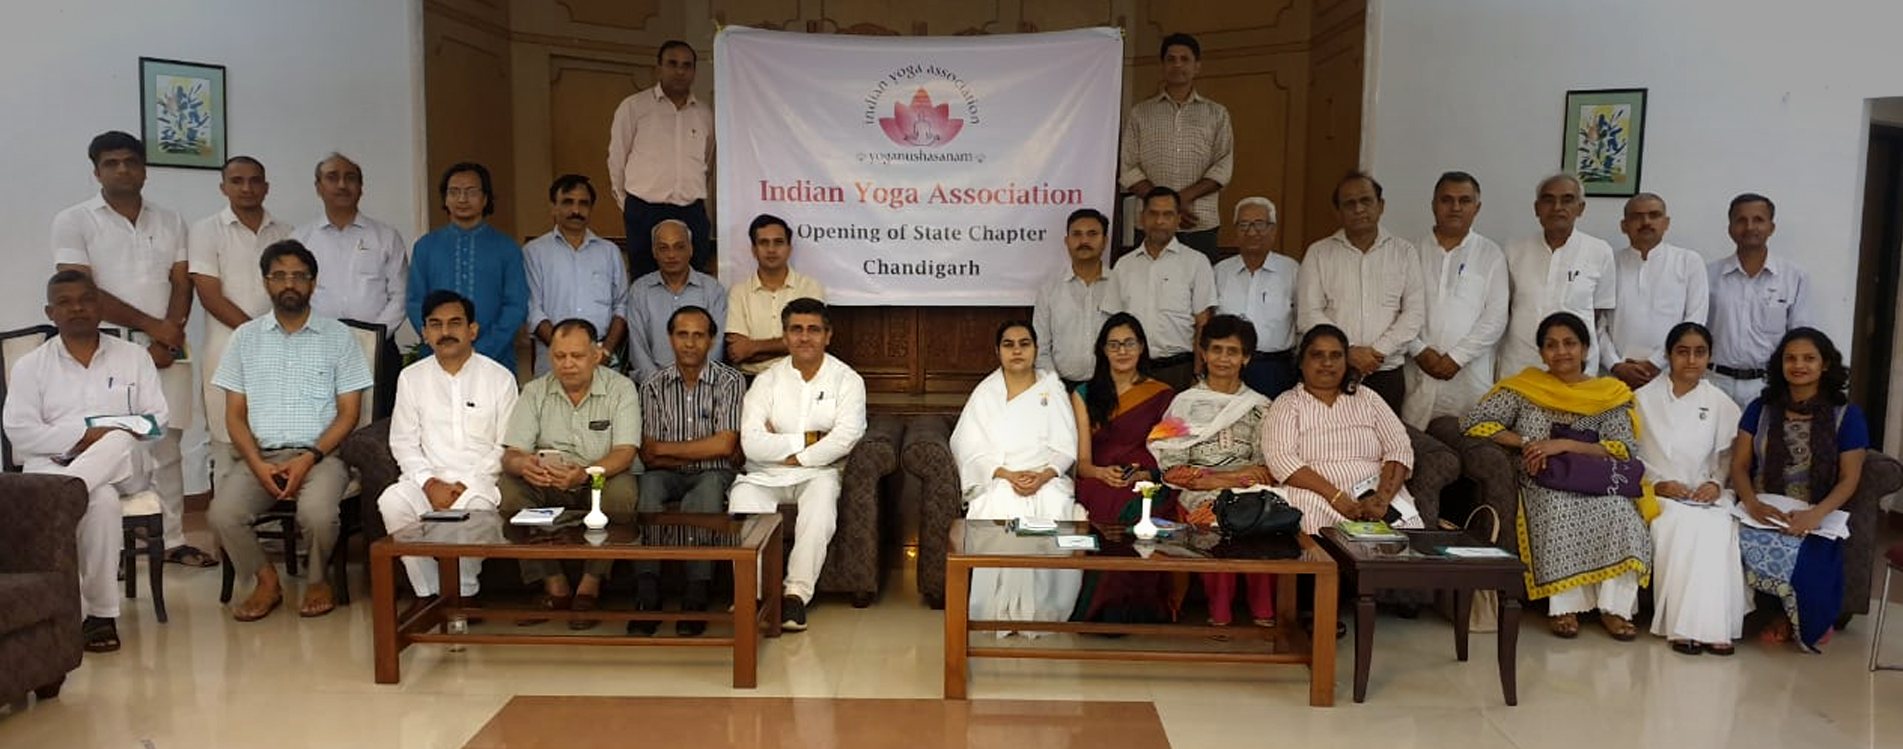 Indian-Yoga-Asssociation-UT-Chapter-of-Chandigarh